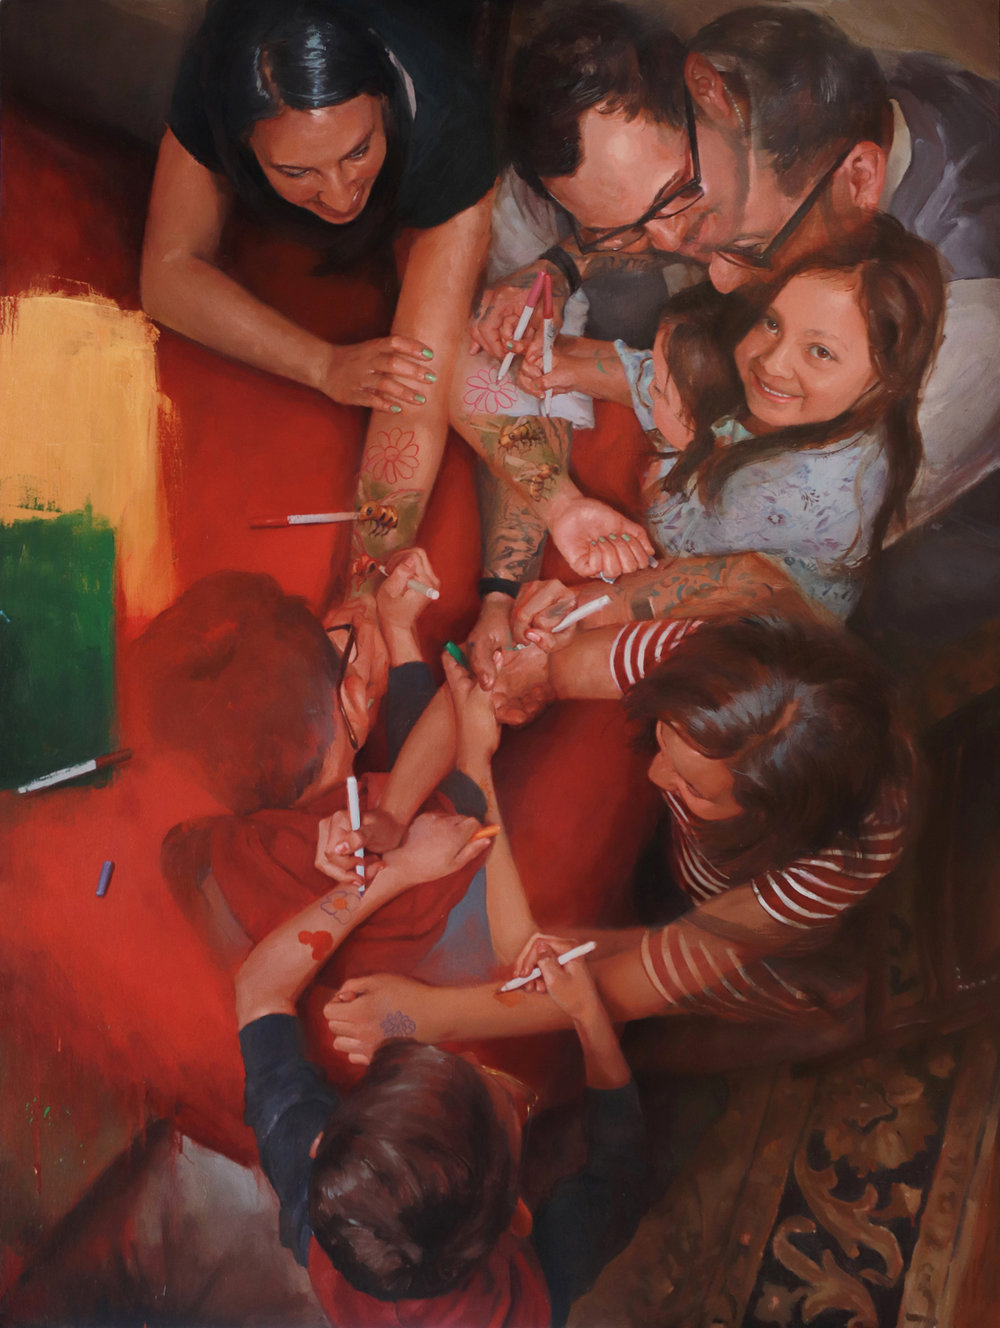 "'The Hurtado Family', oil on canvas, 48"" x  36"", 2018, Collection of Nikko and Joanne Hurtado"